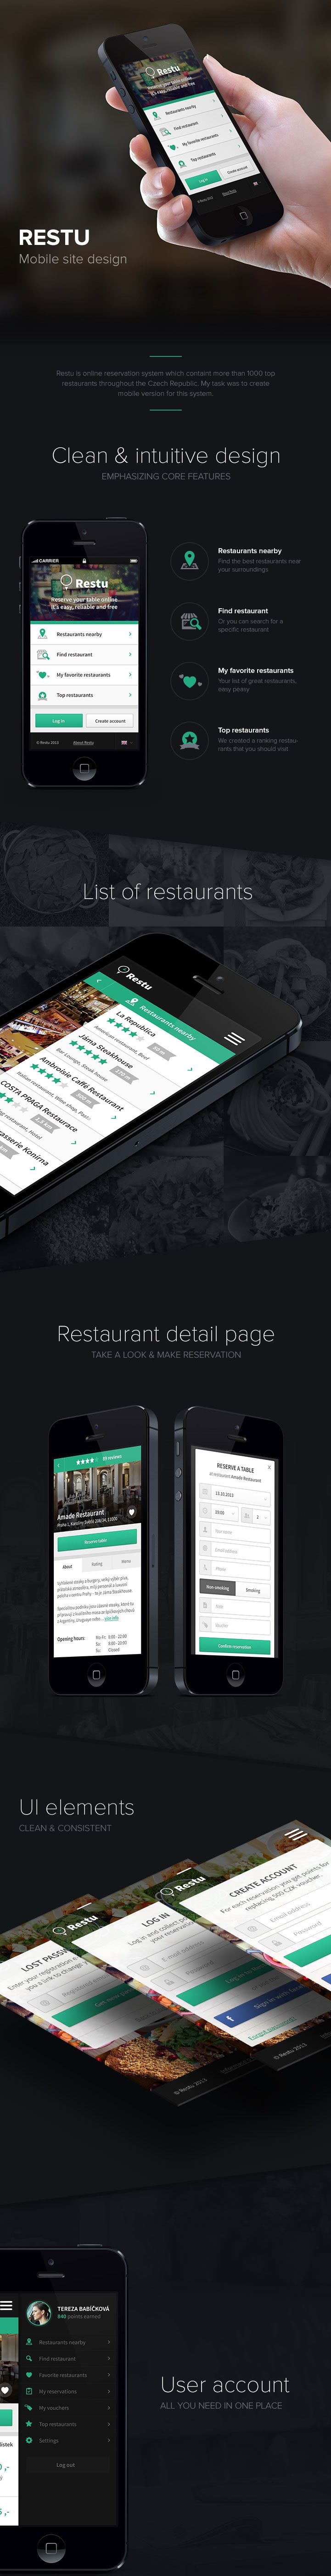 Daily Mobile UI Design Inspiration #186